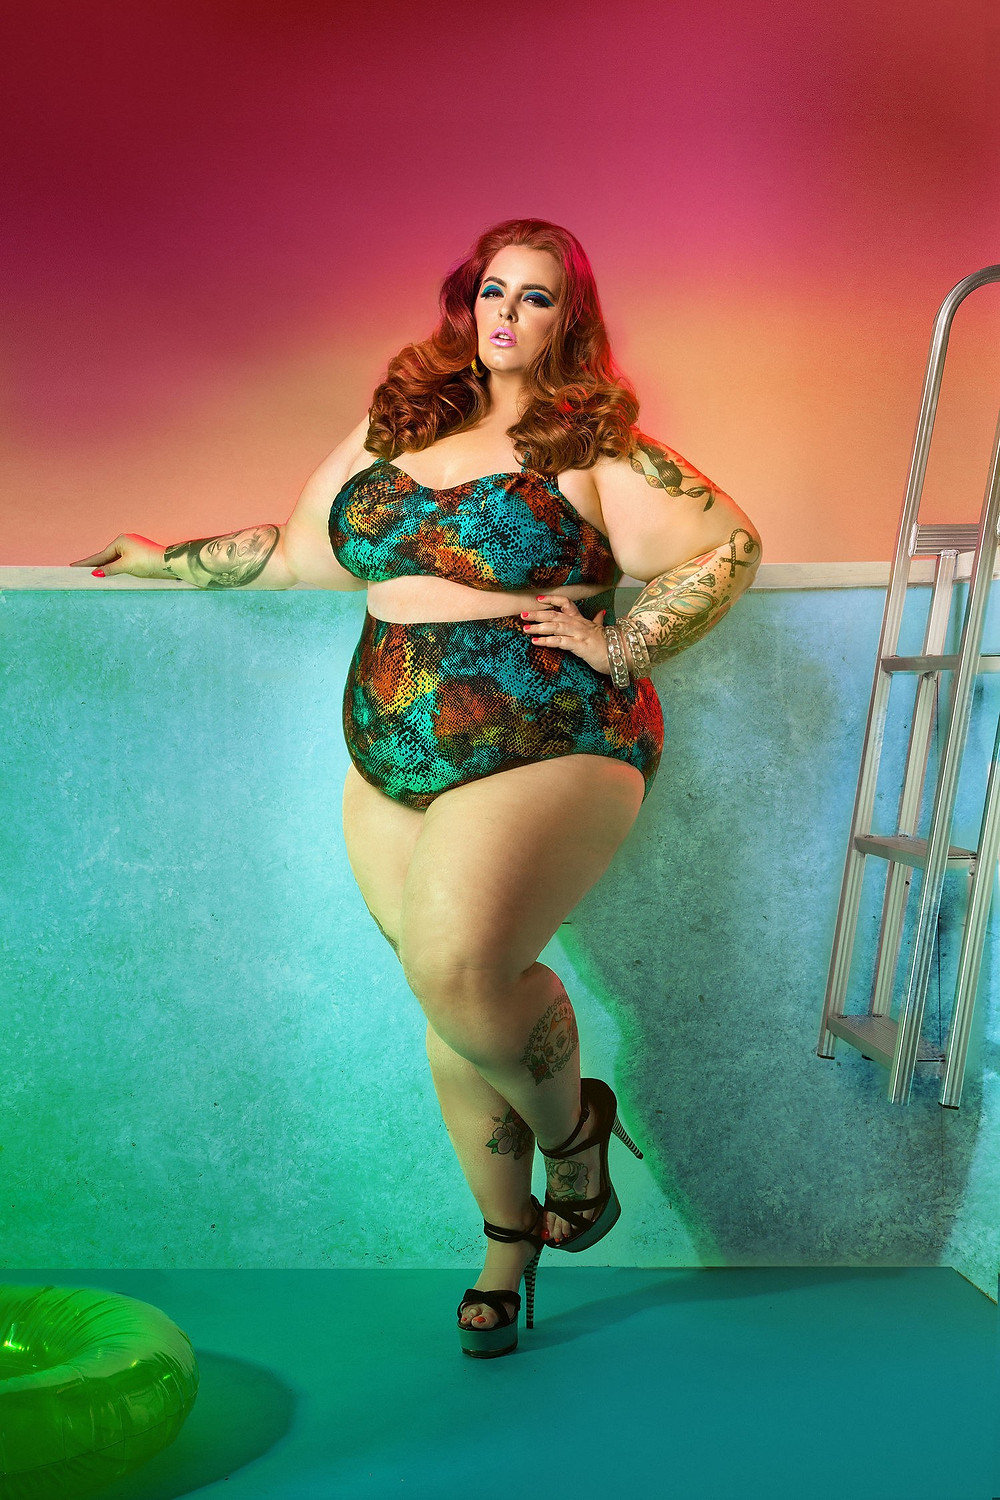 A plus-sized model with red curled hair stands in a bikini and stilettos, in an empty pool. The lighting in this shot is also just.. Hnggg.